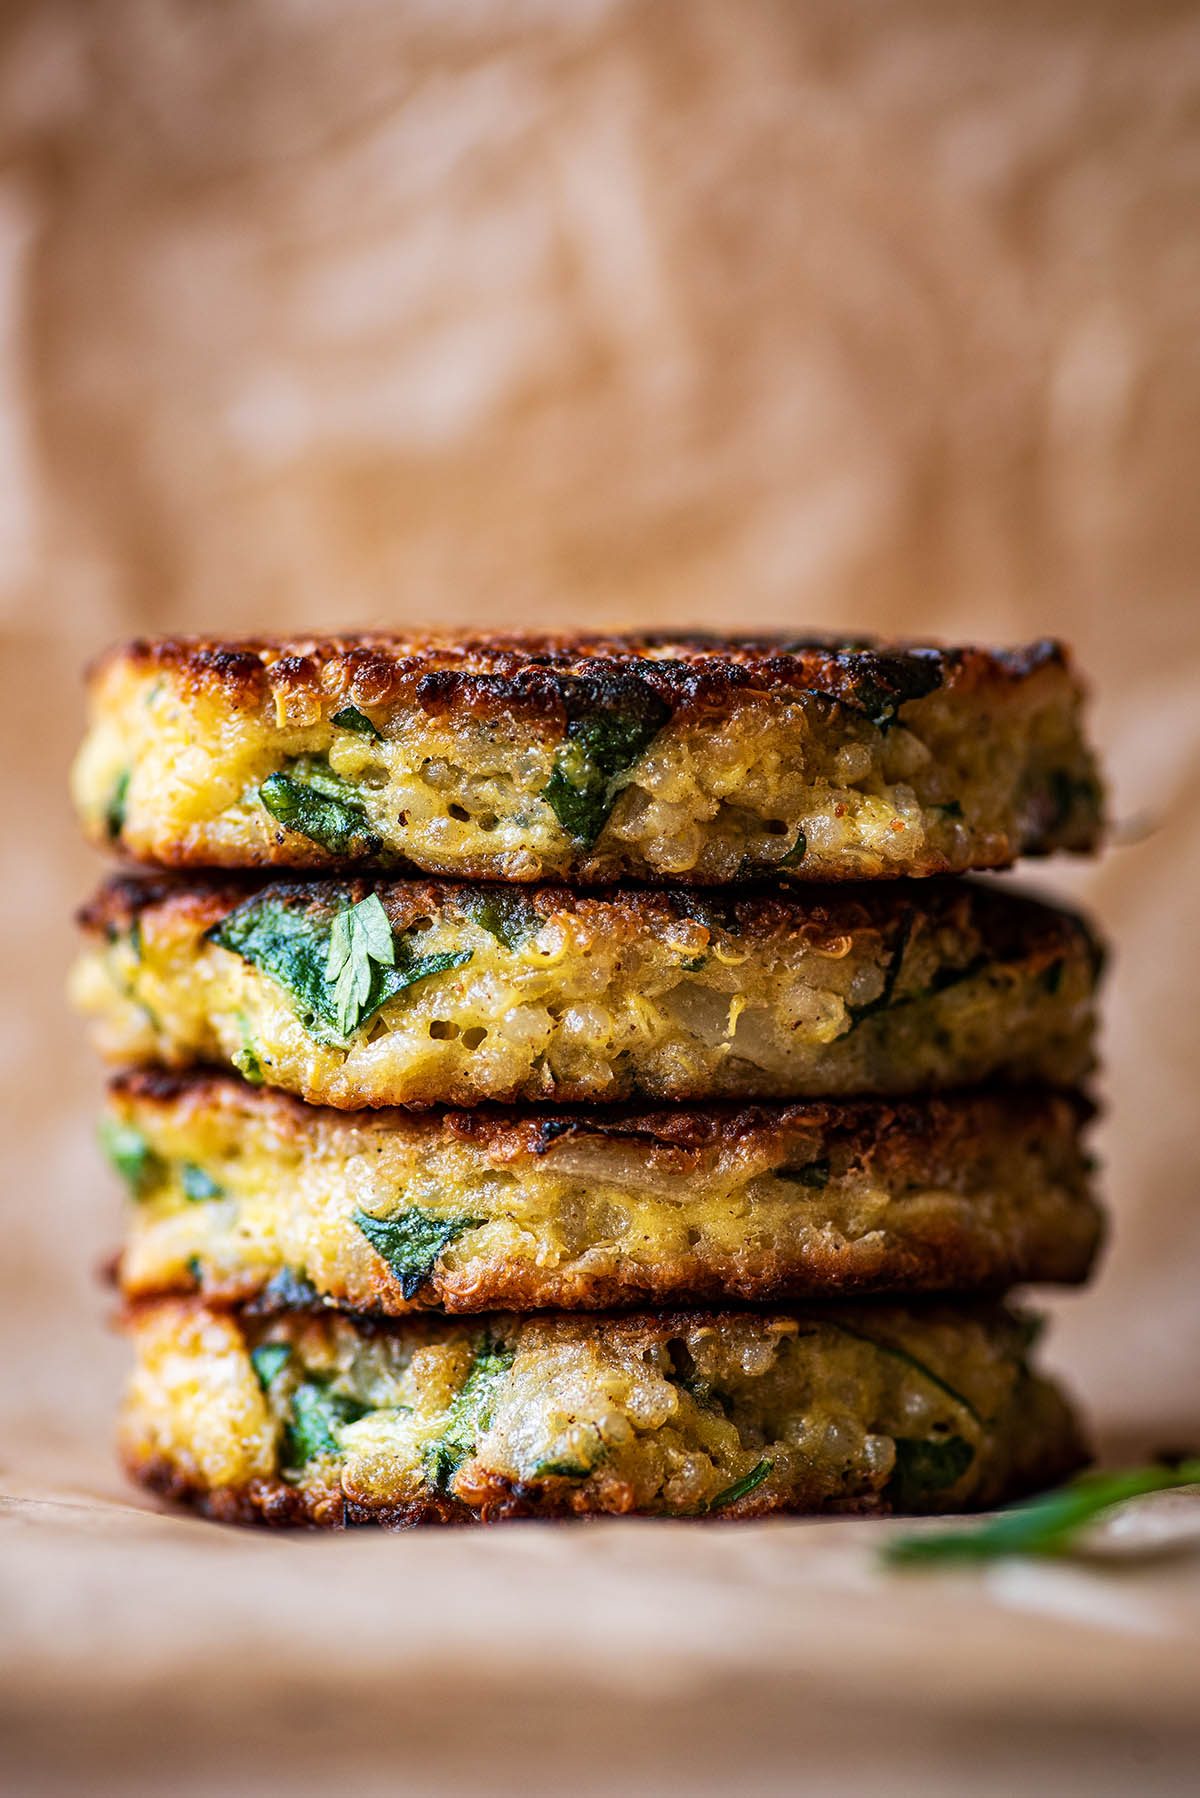 A stack of four quinoa patties on baking paper.